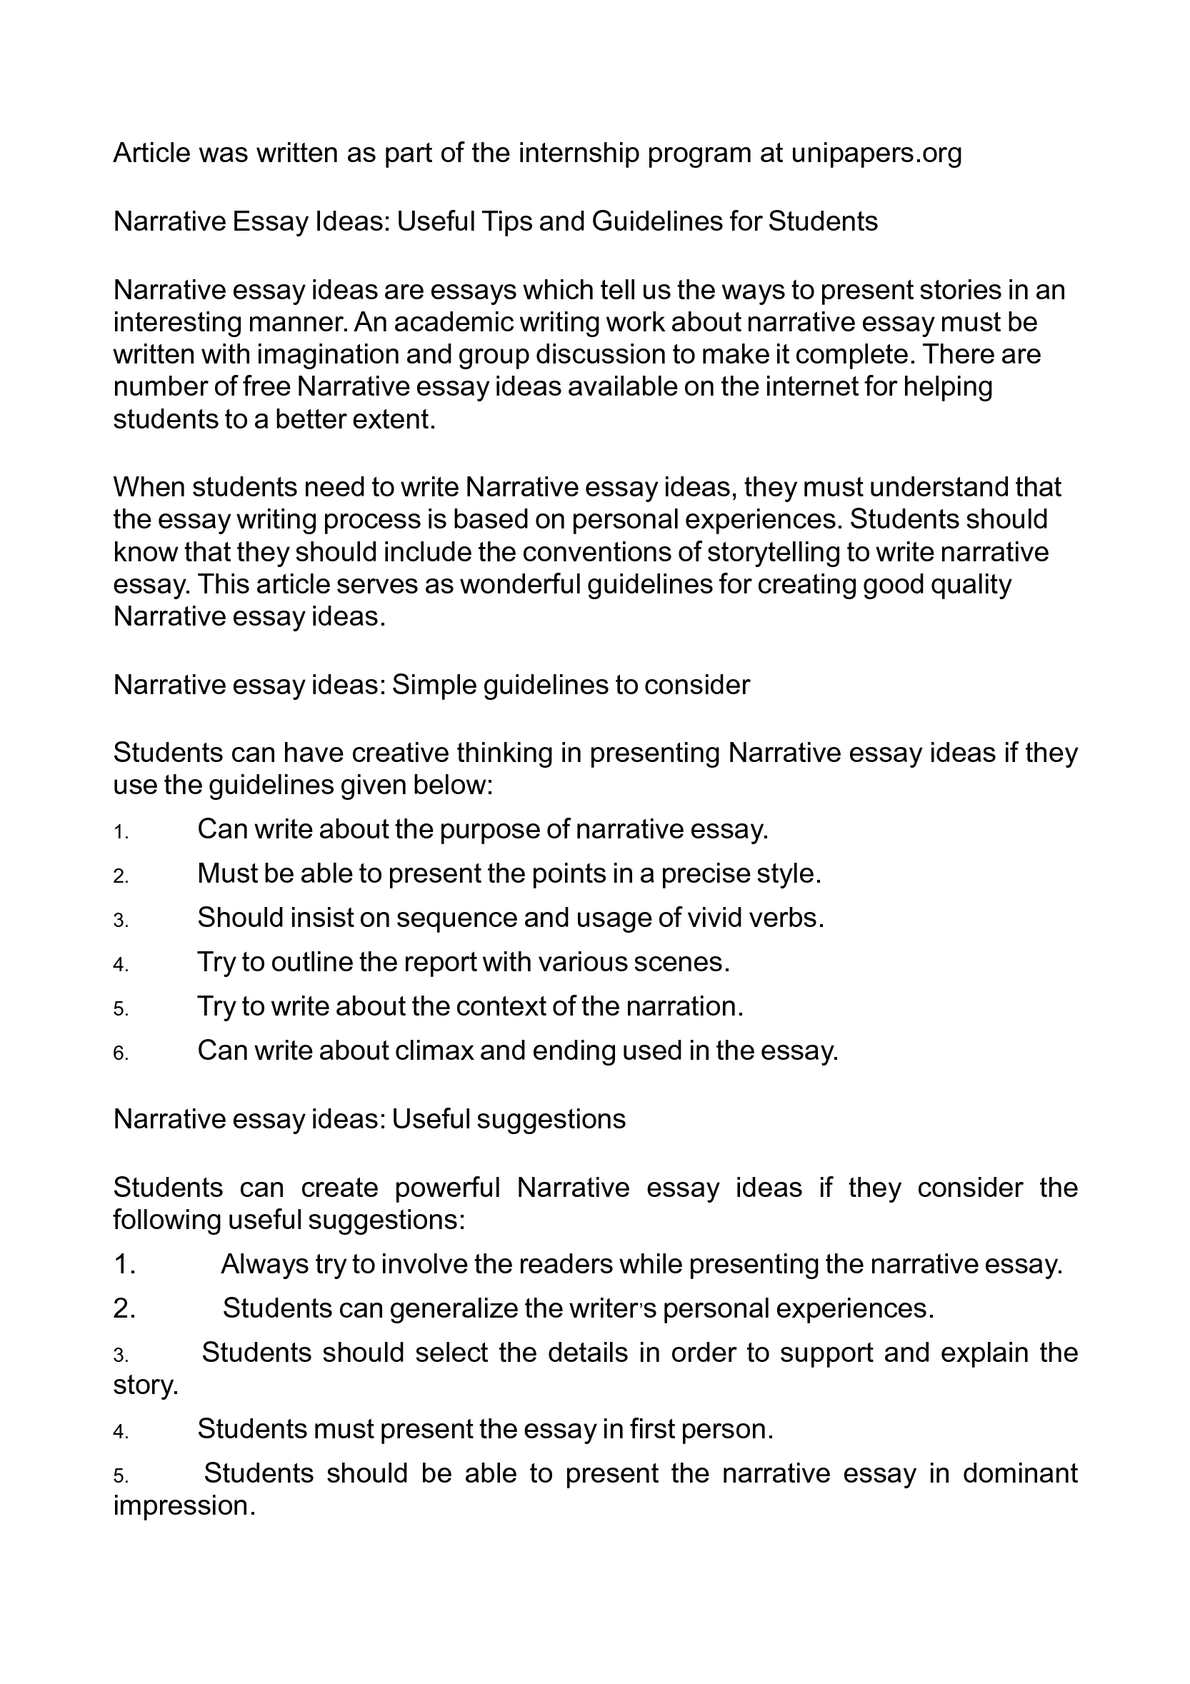 025 Writing Narrative Essay P1 Amazing A About Being Judged Quizlet Powerpoint Full